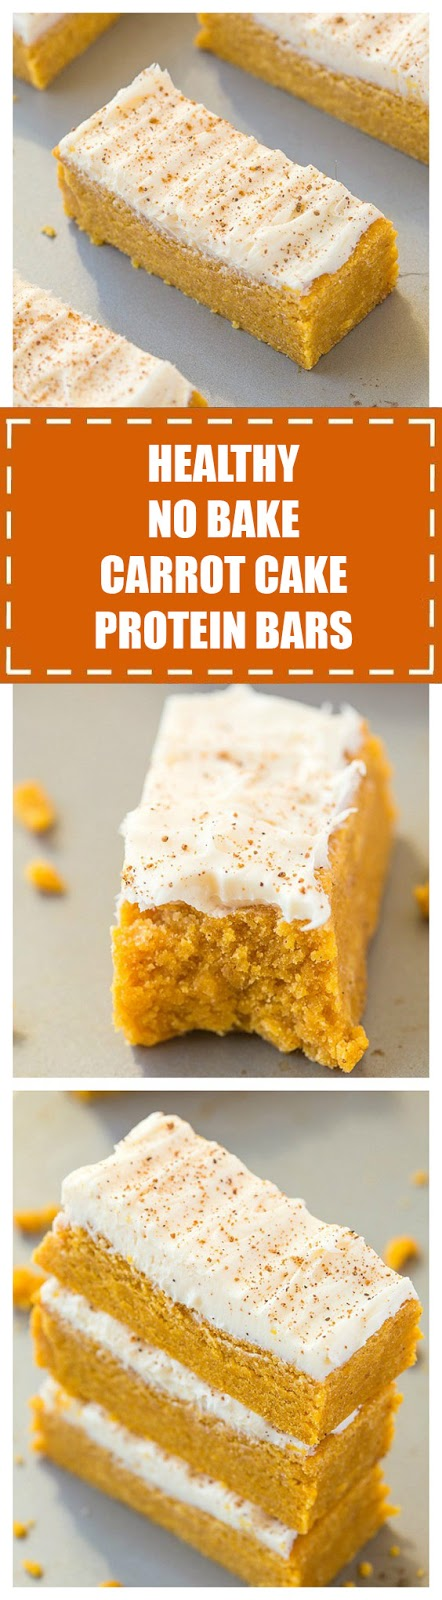 Healthy No Bake Carrot Cake Protein Bars